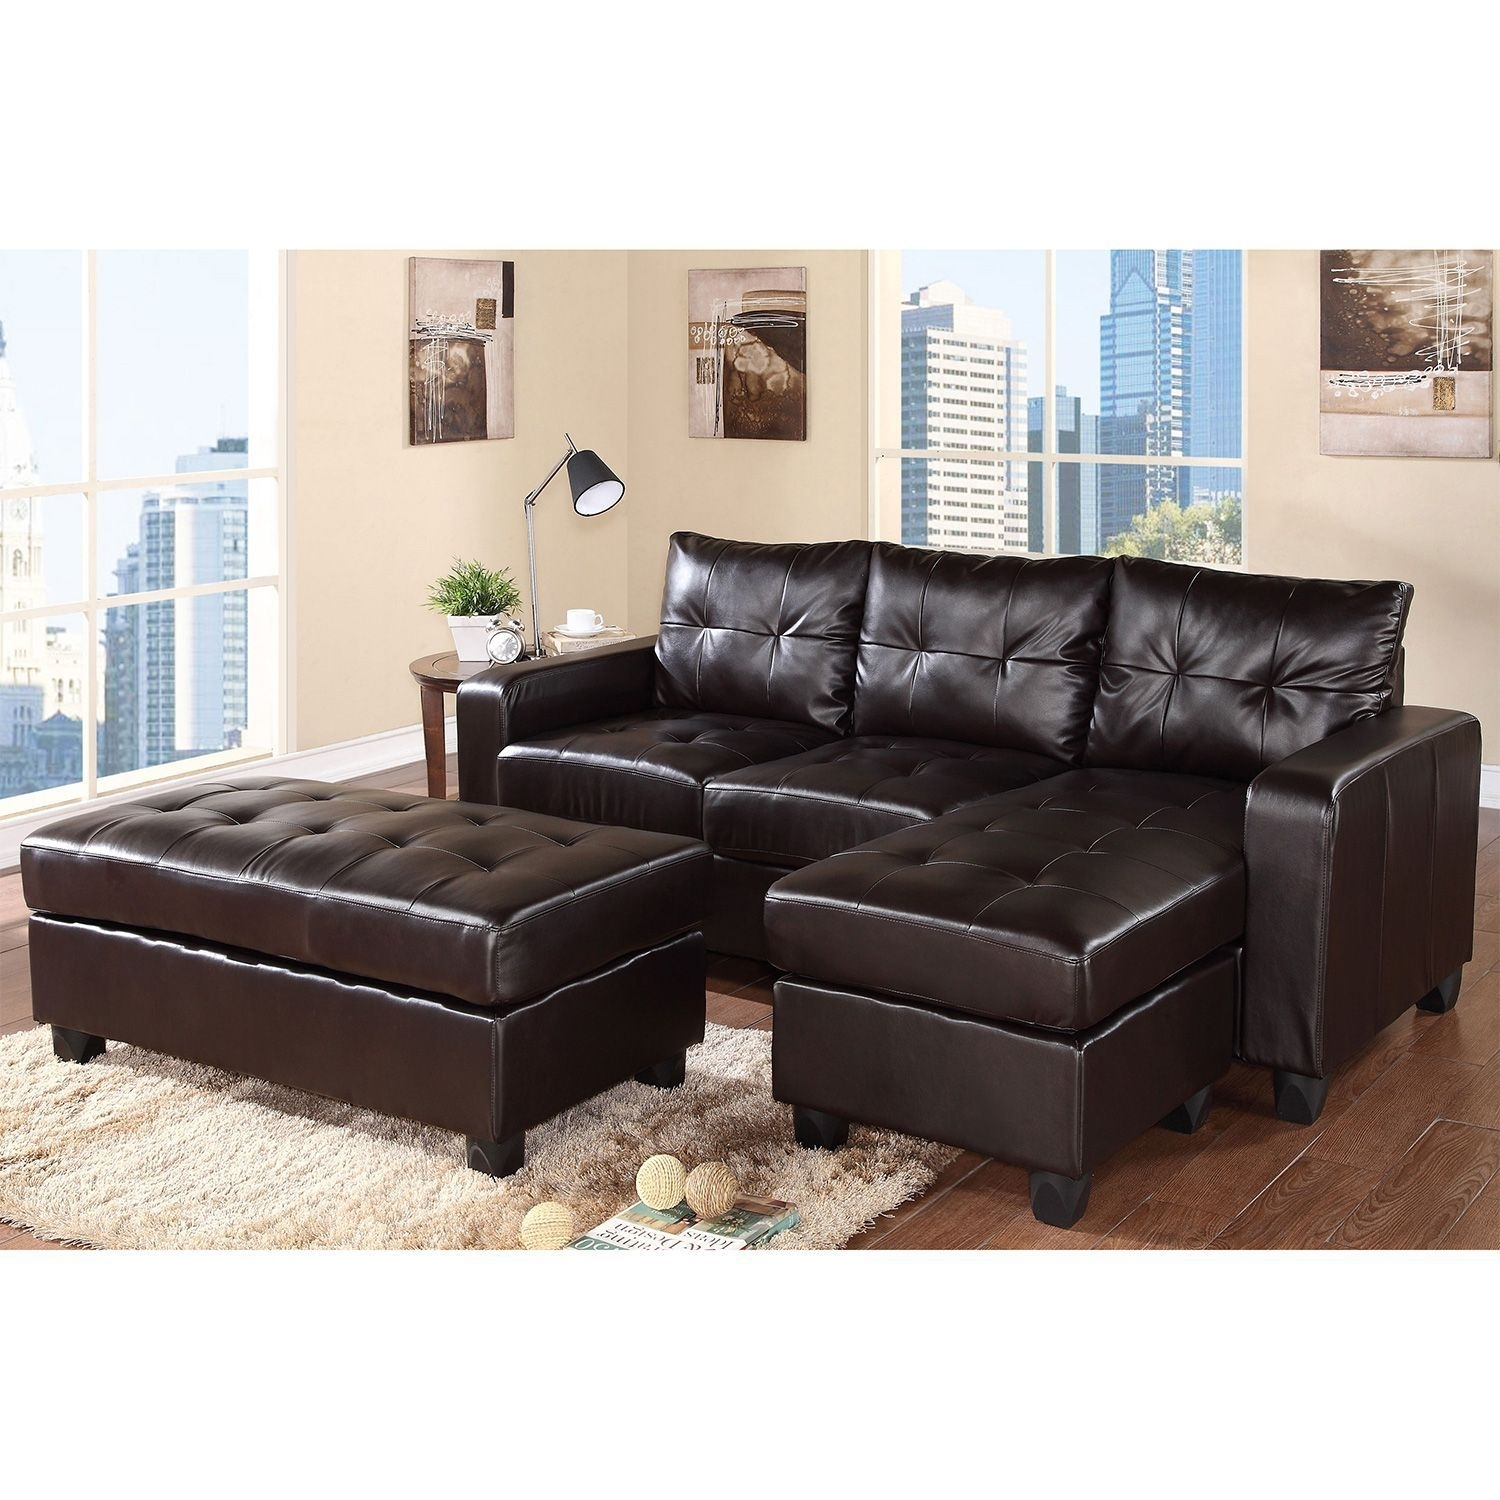 10 Best Collection Of Off White Leather Sofas: 10 Collection Of Sectional Sofas At Sam's Club